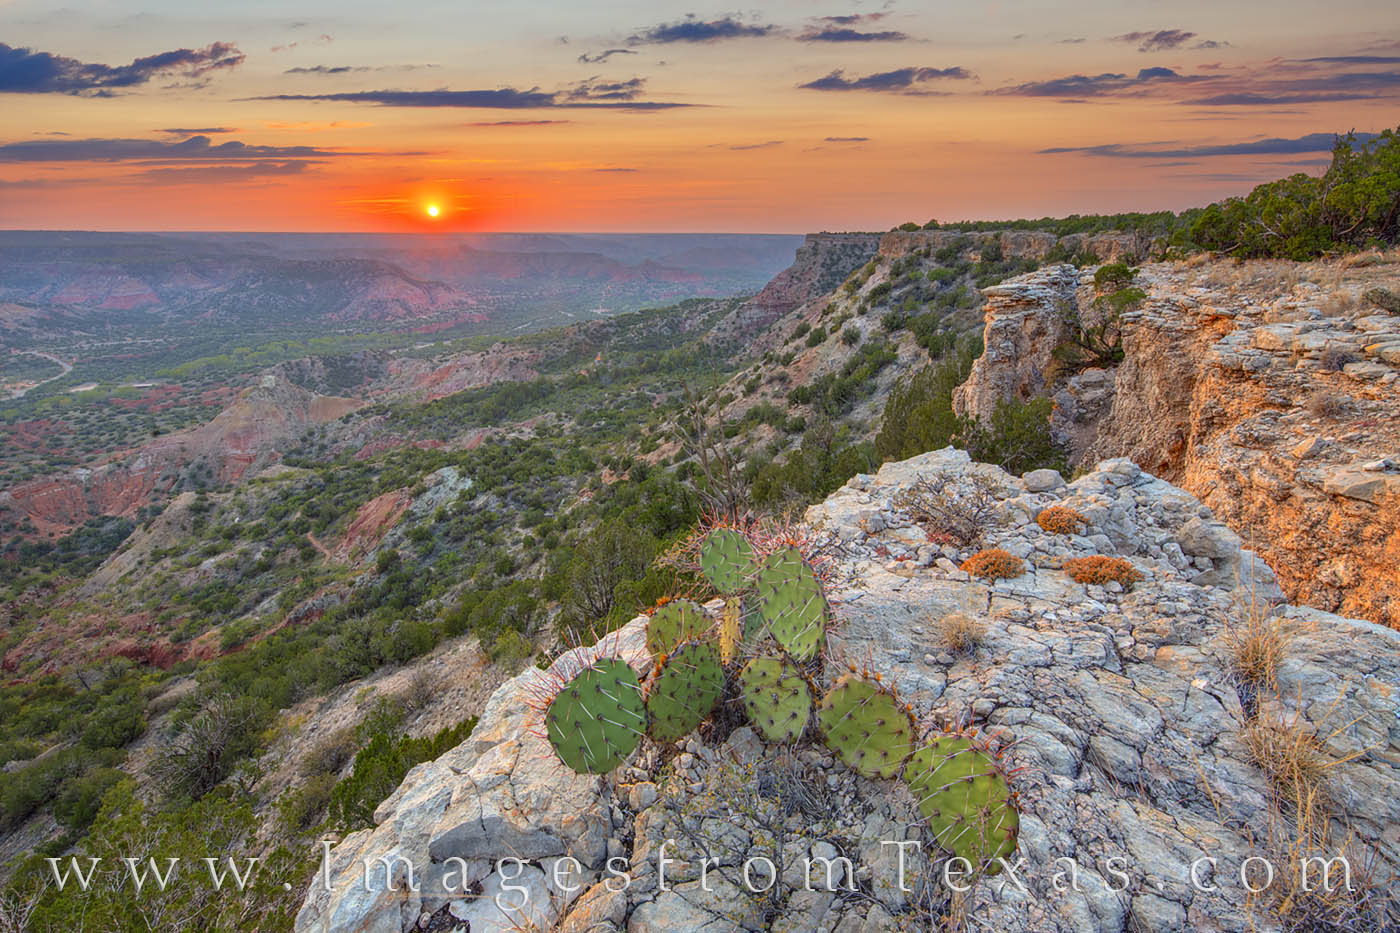 palo duro, fortress cliff, sunset, october, hiking, off-trail, vista, beauty, west texas, prickly pear, photo